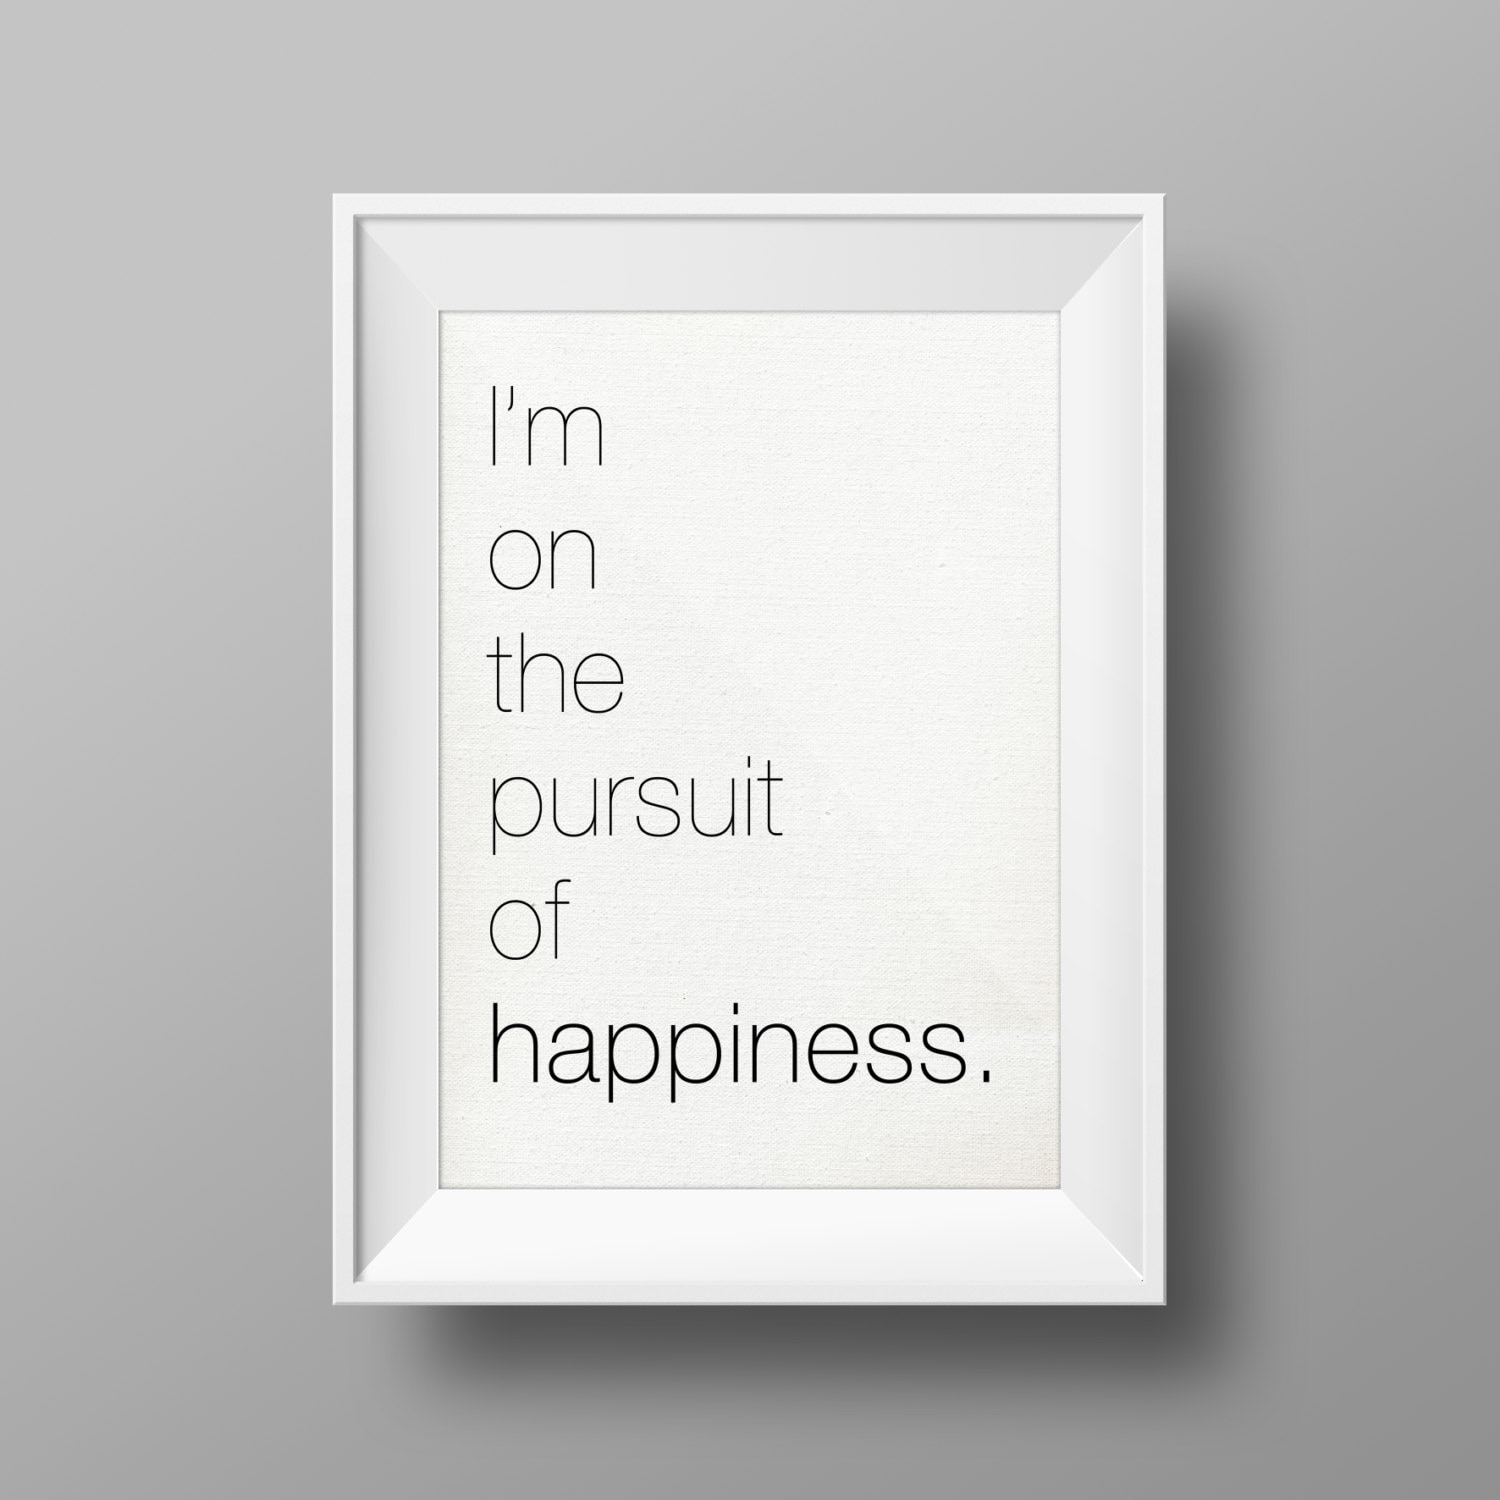 Quotes About The Pursuit Of Happiness: Pursuit Of Happiness Happiness Poster Quote By CreatedByS